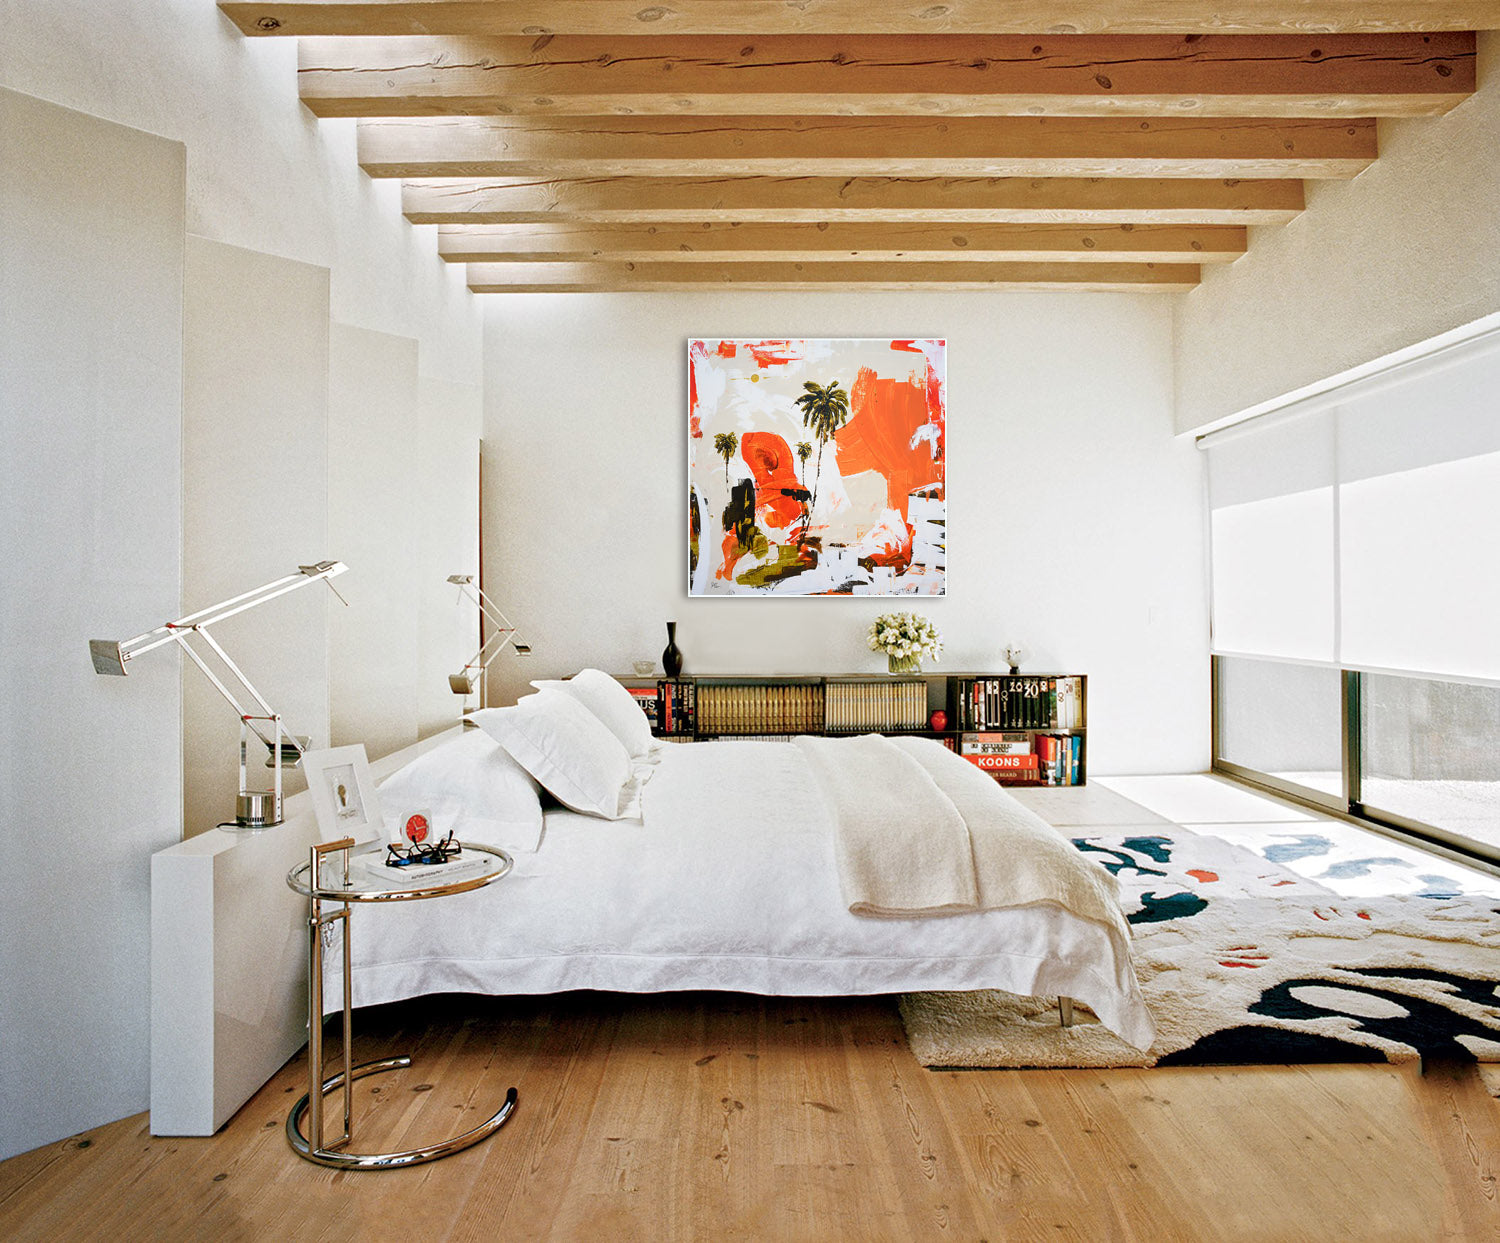 Modern interior with abstract art on wall